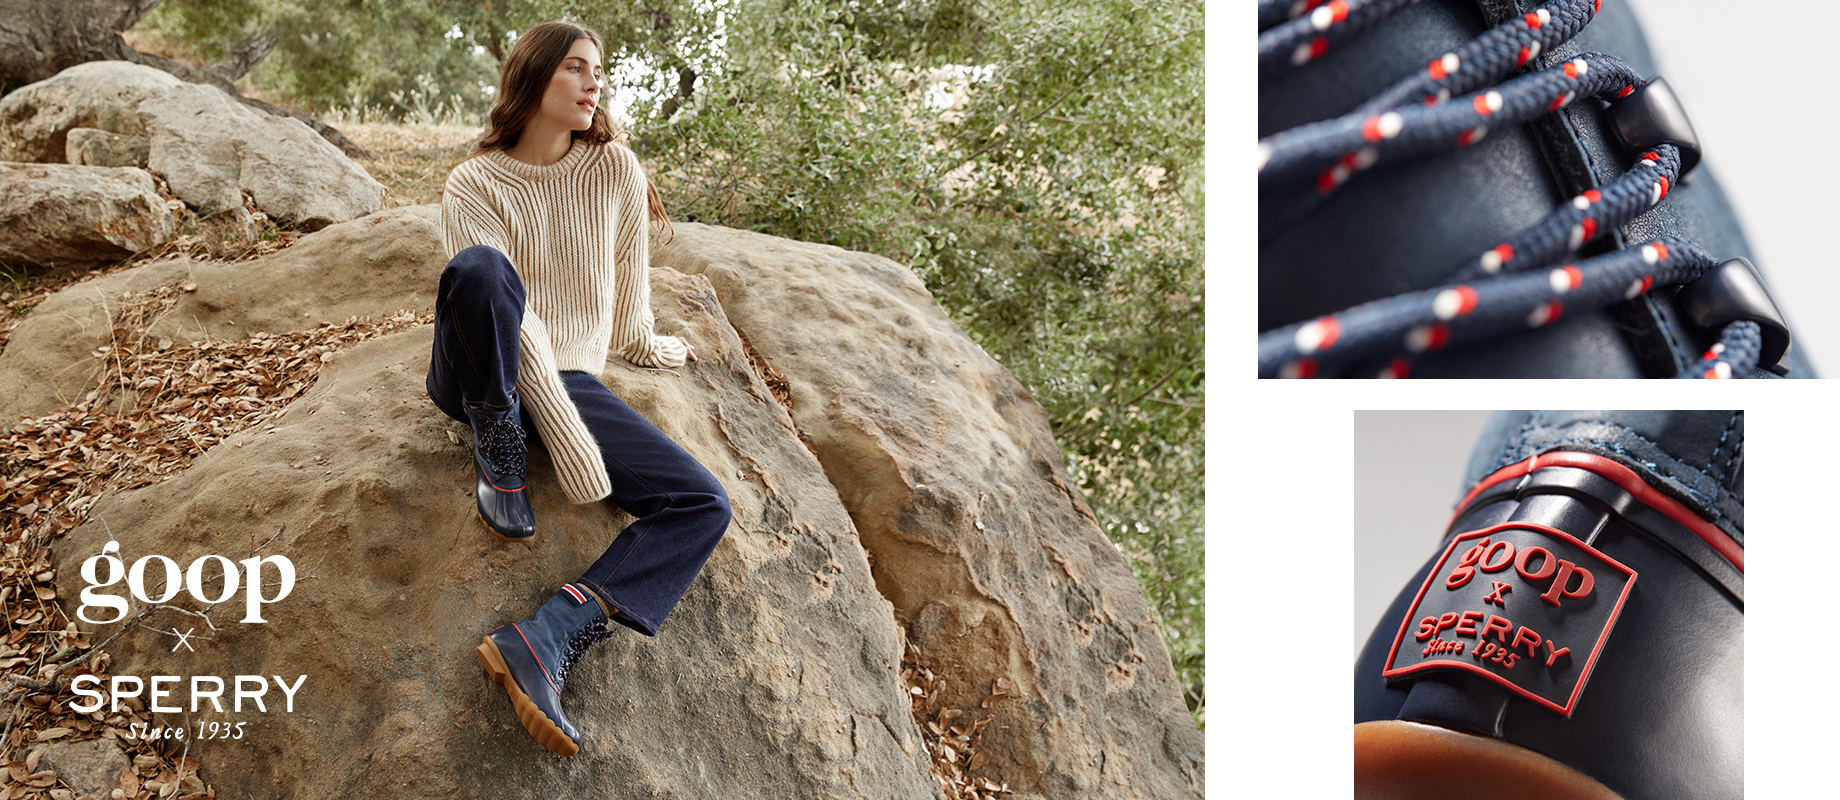 Goop & Sperry collaborative boots in blue worn by a woman in a sweater on a rock in the woods.